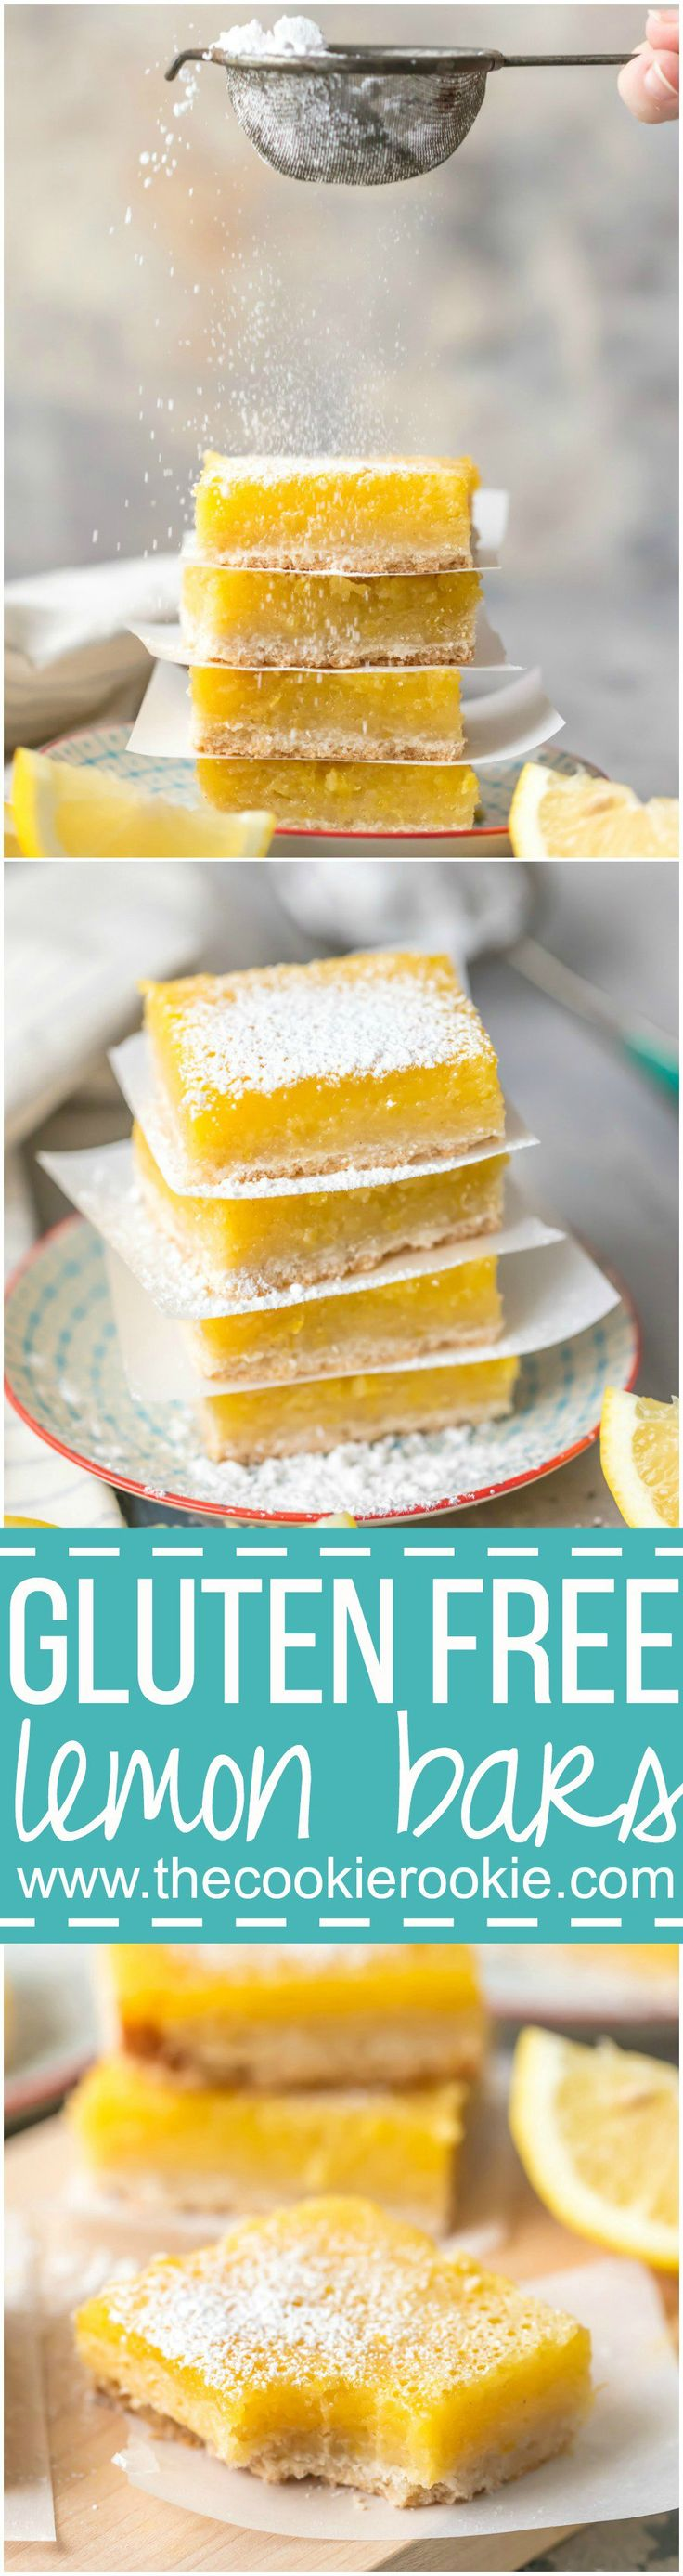 These GLUTEN FREE LEMON BARS are the easiest and best lemon bar recipe, and they just so happen to be gluten free! SO DELICIOUS! Thick and creamy lemon squares for the win. via @beckygallhardin